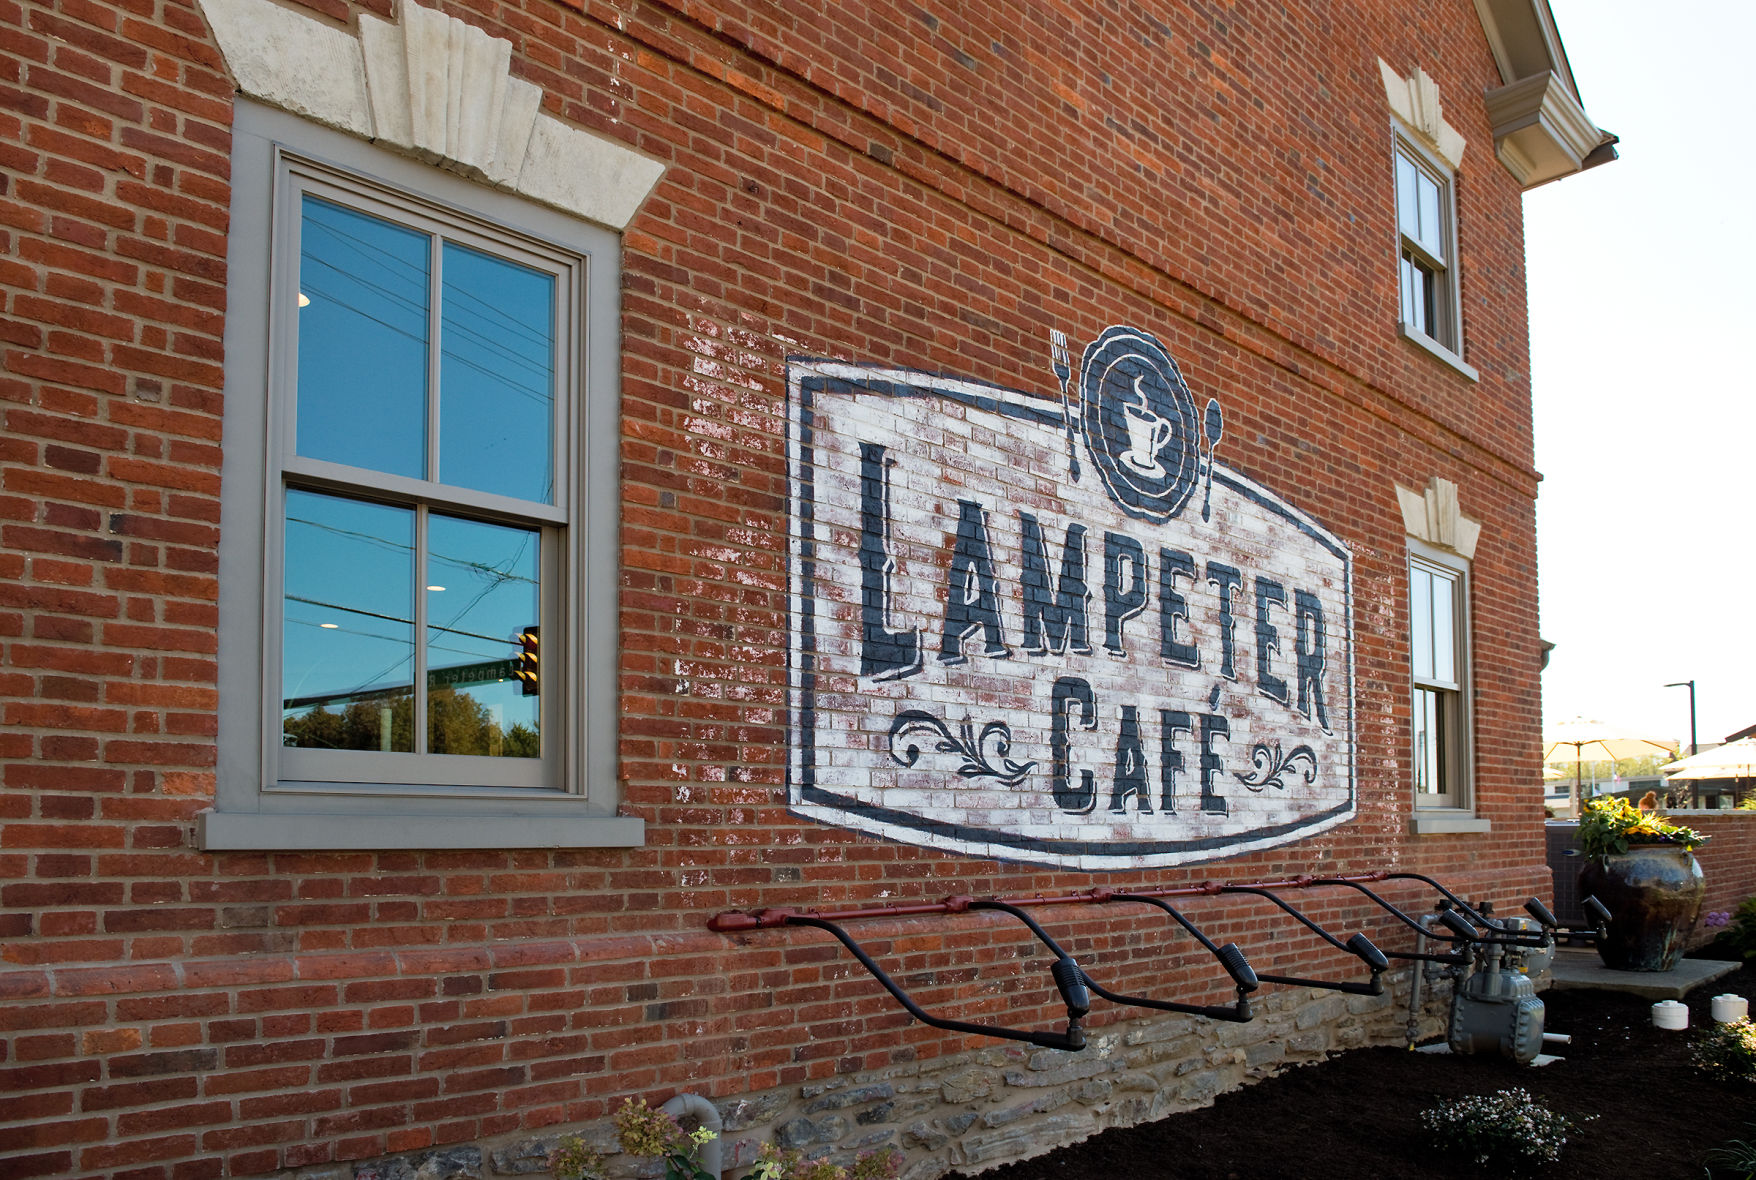 Lampeter Cafe opens in circa1765 building in the village of